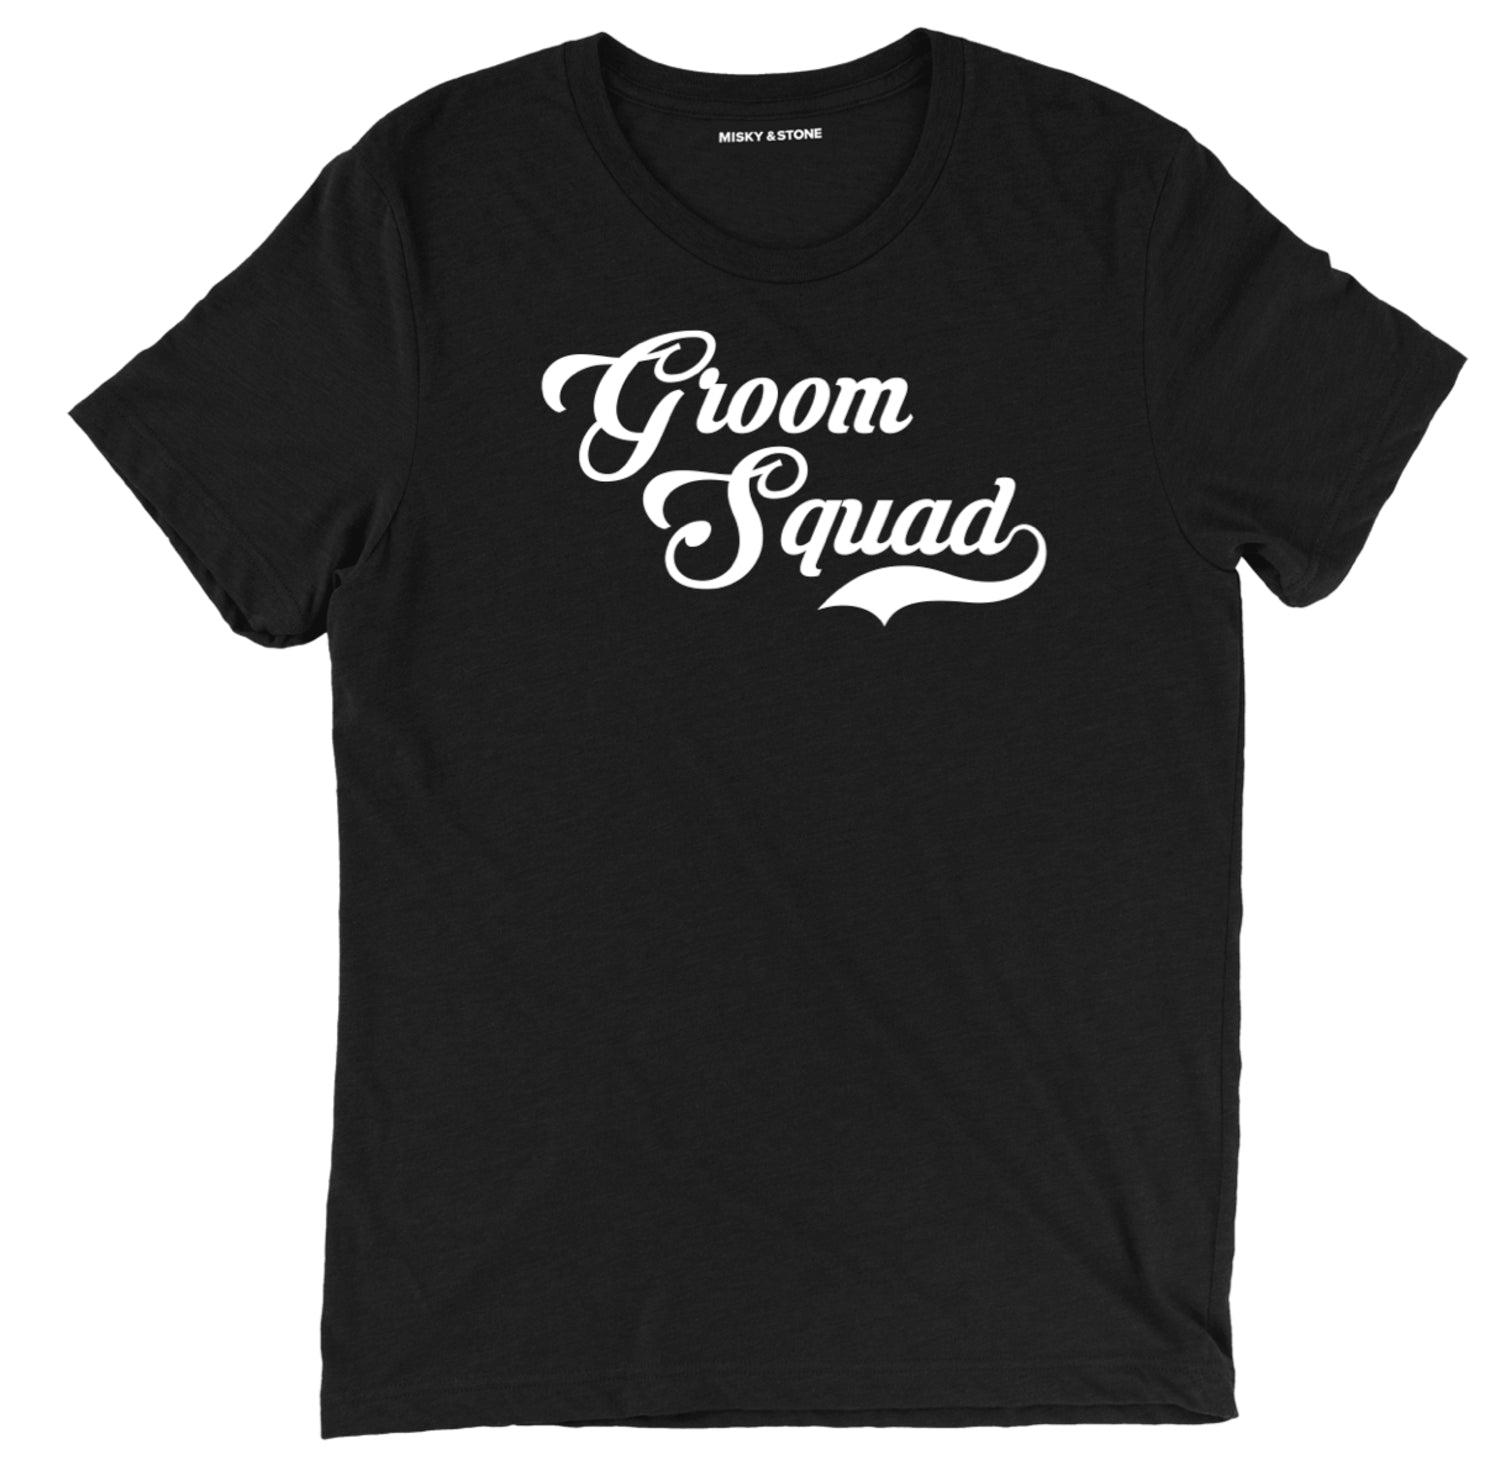 groom squad tee shirt, groom squad apparel, groom squad merch, groom squad clothing, bachelor party tee shirt, bachelor party apparel, bachelor party merch, funny bachelor tee shirt